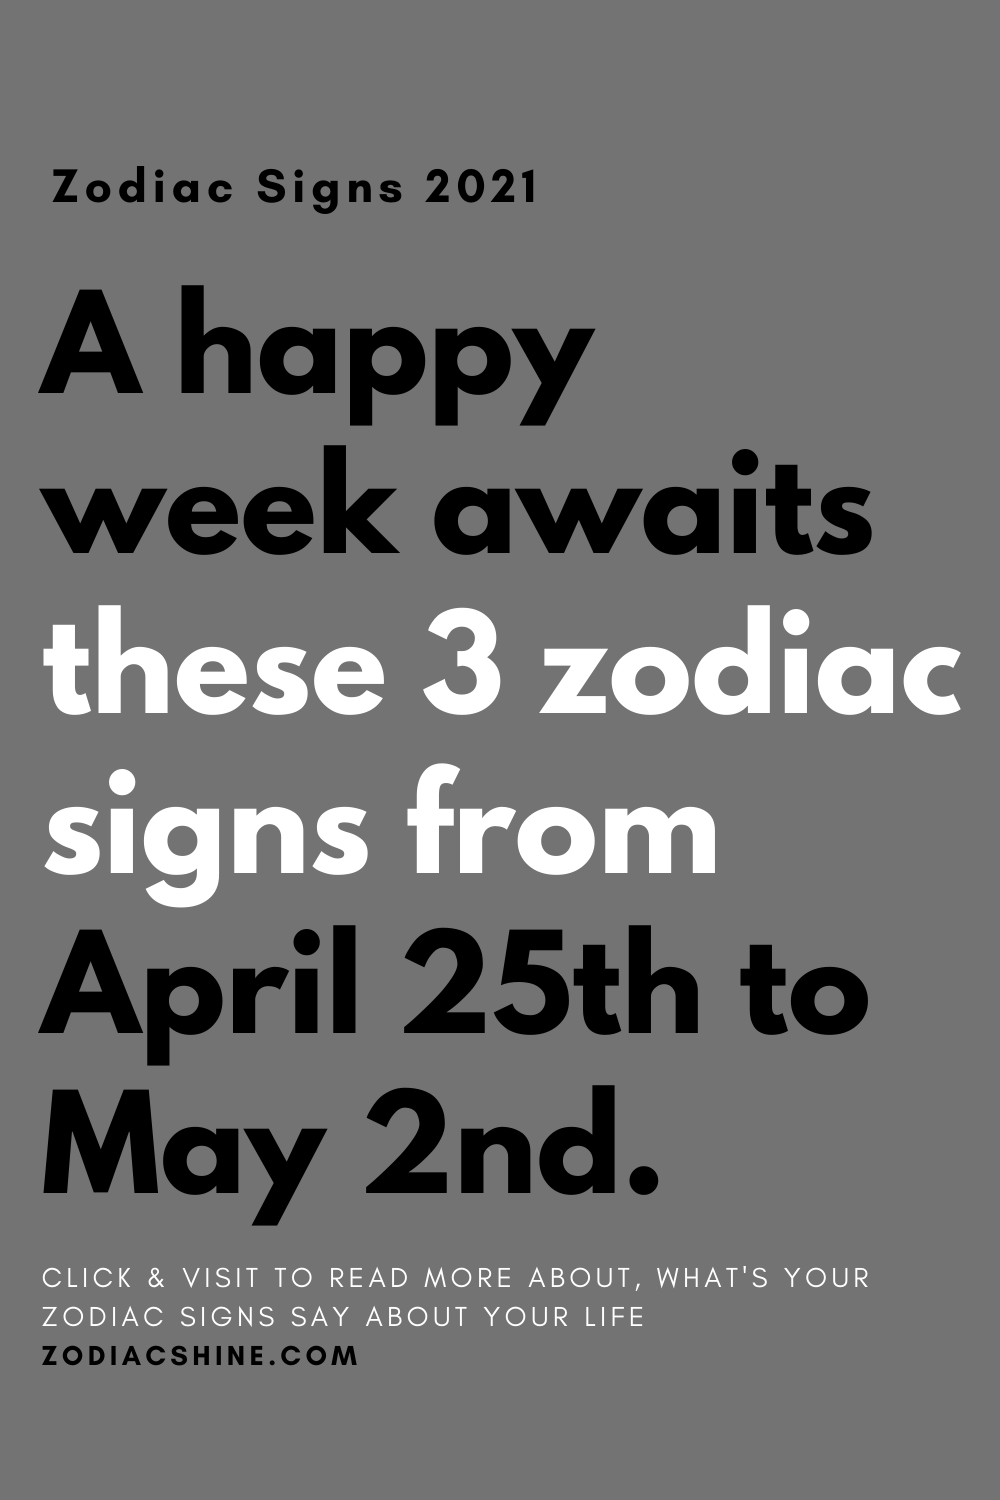 A happy week awaits these 3 zodiac signs from April 25th to May 2nd